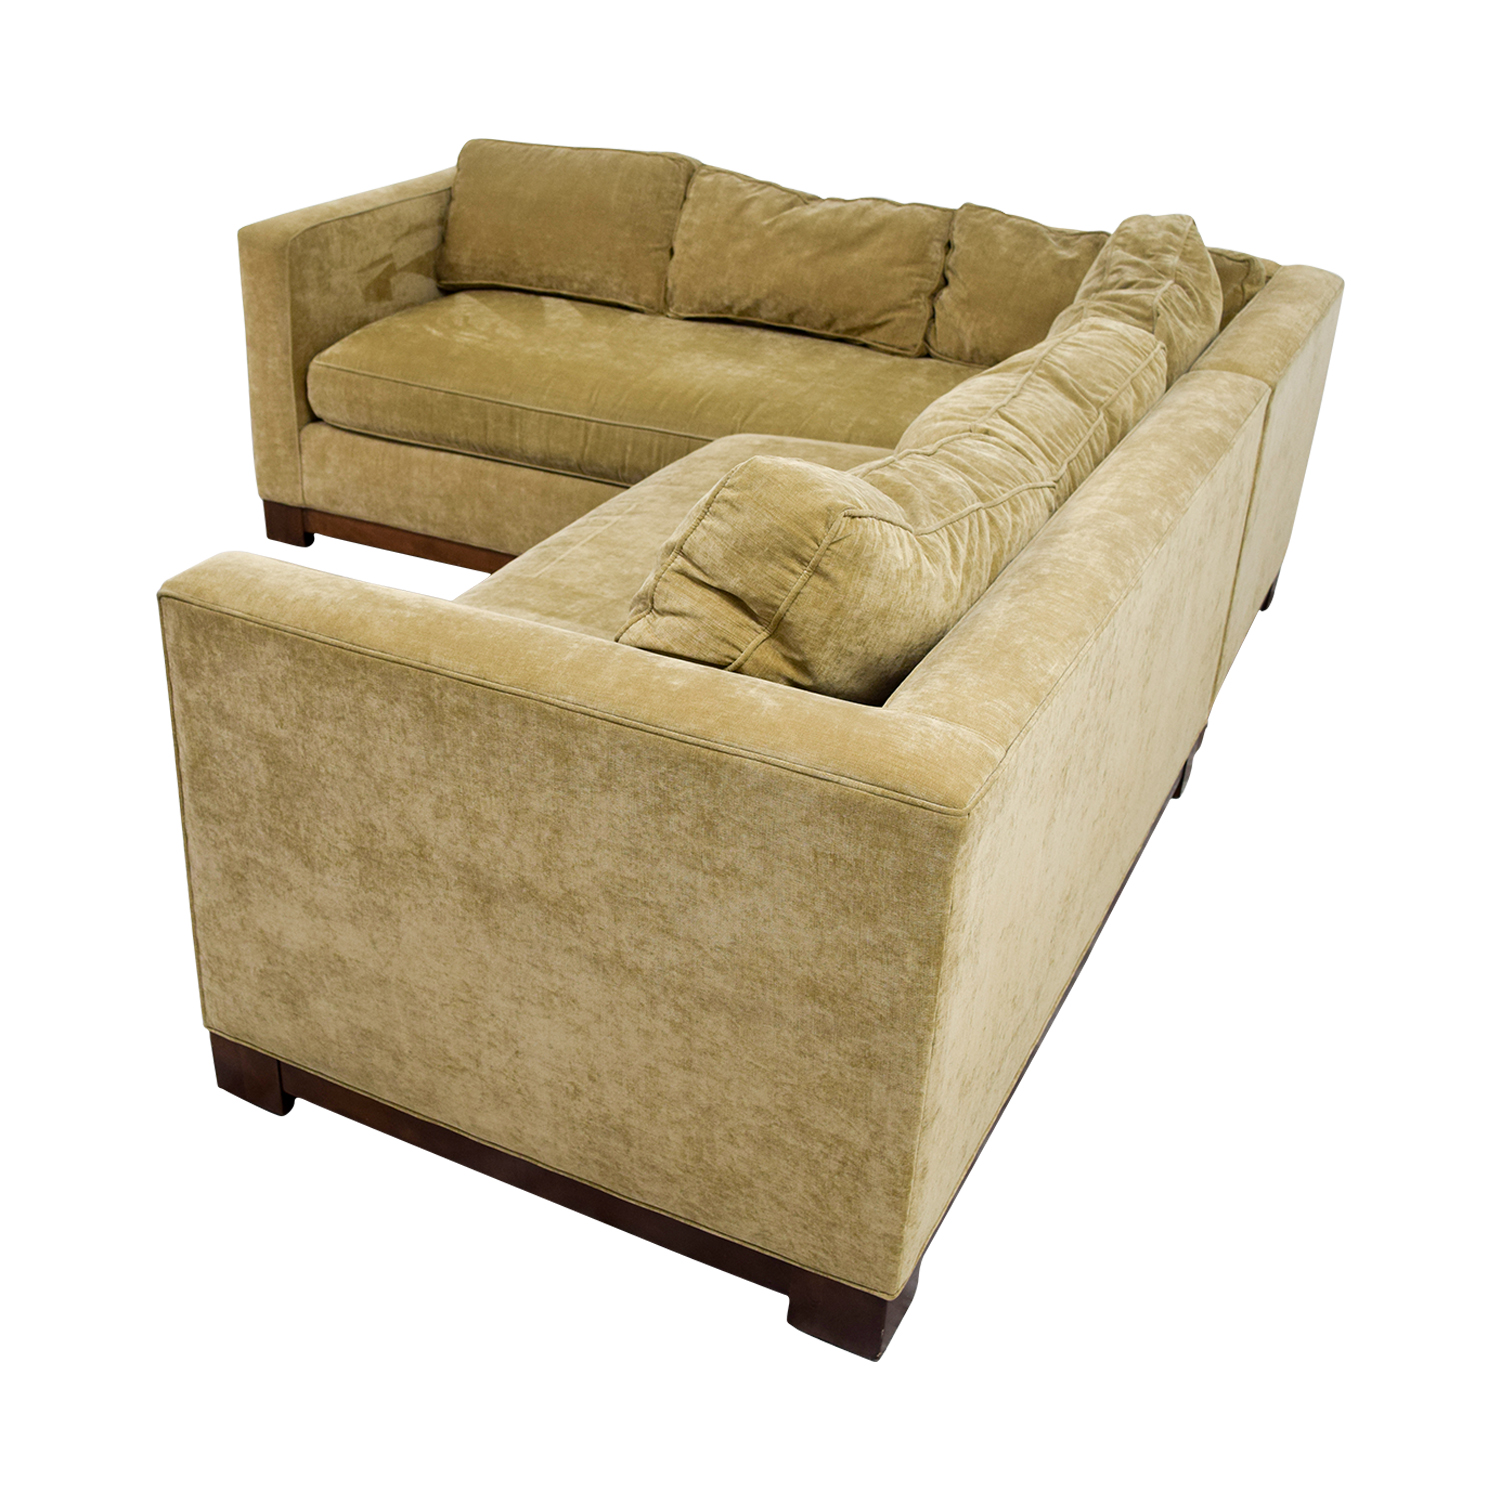 gold sectional sofa shabby chic ancient red tone bed